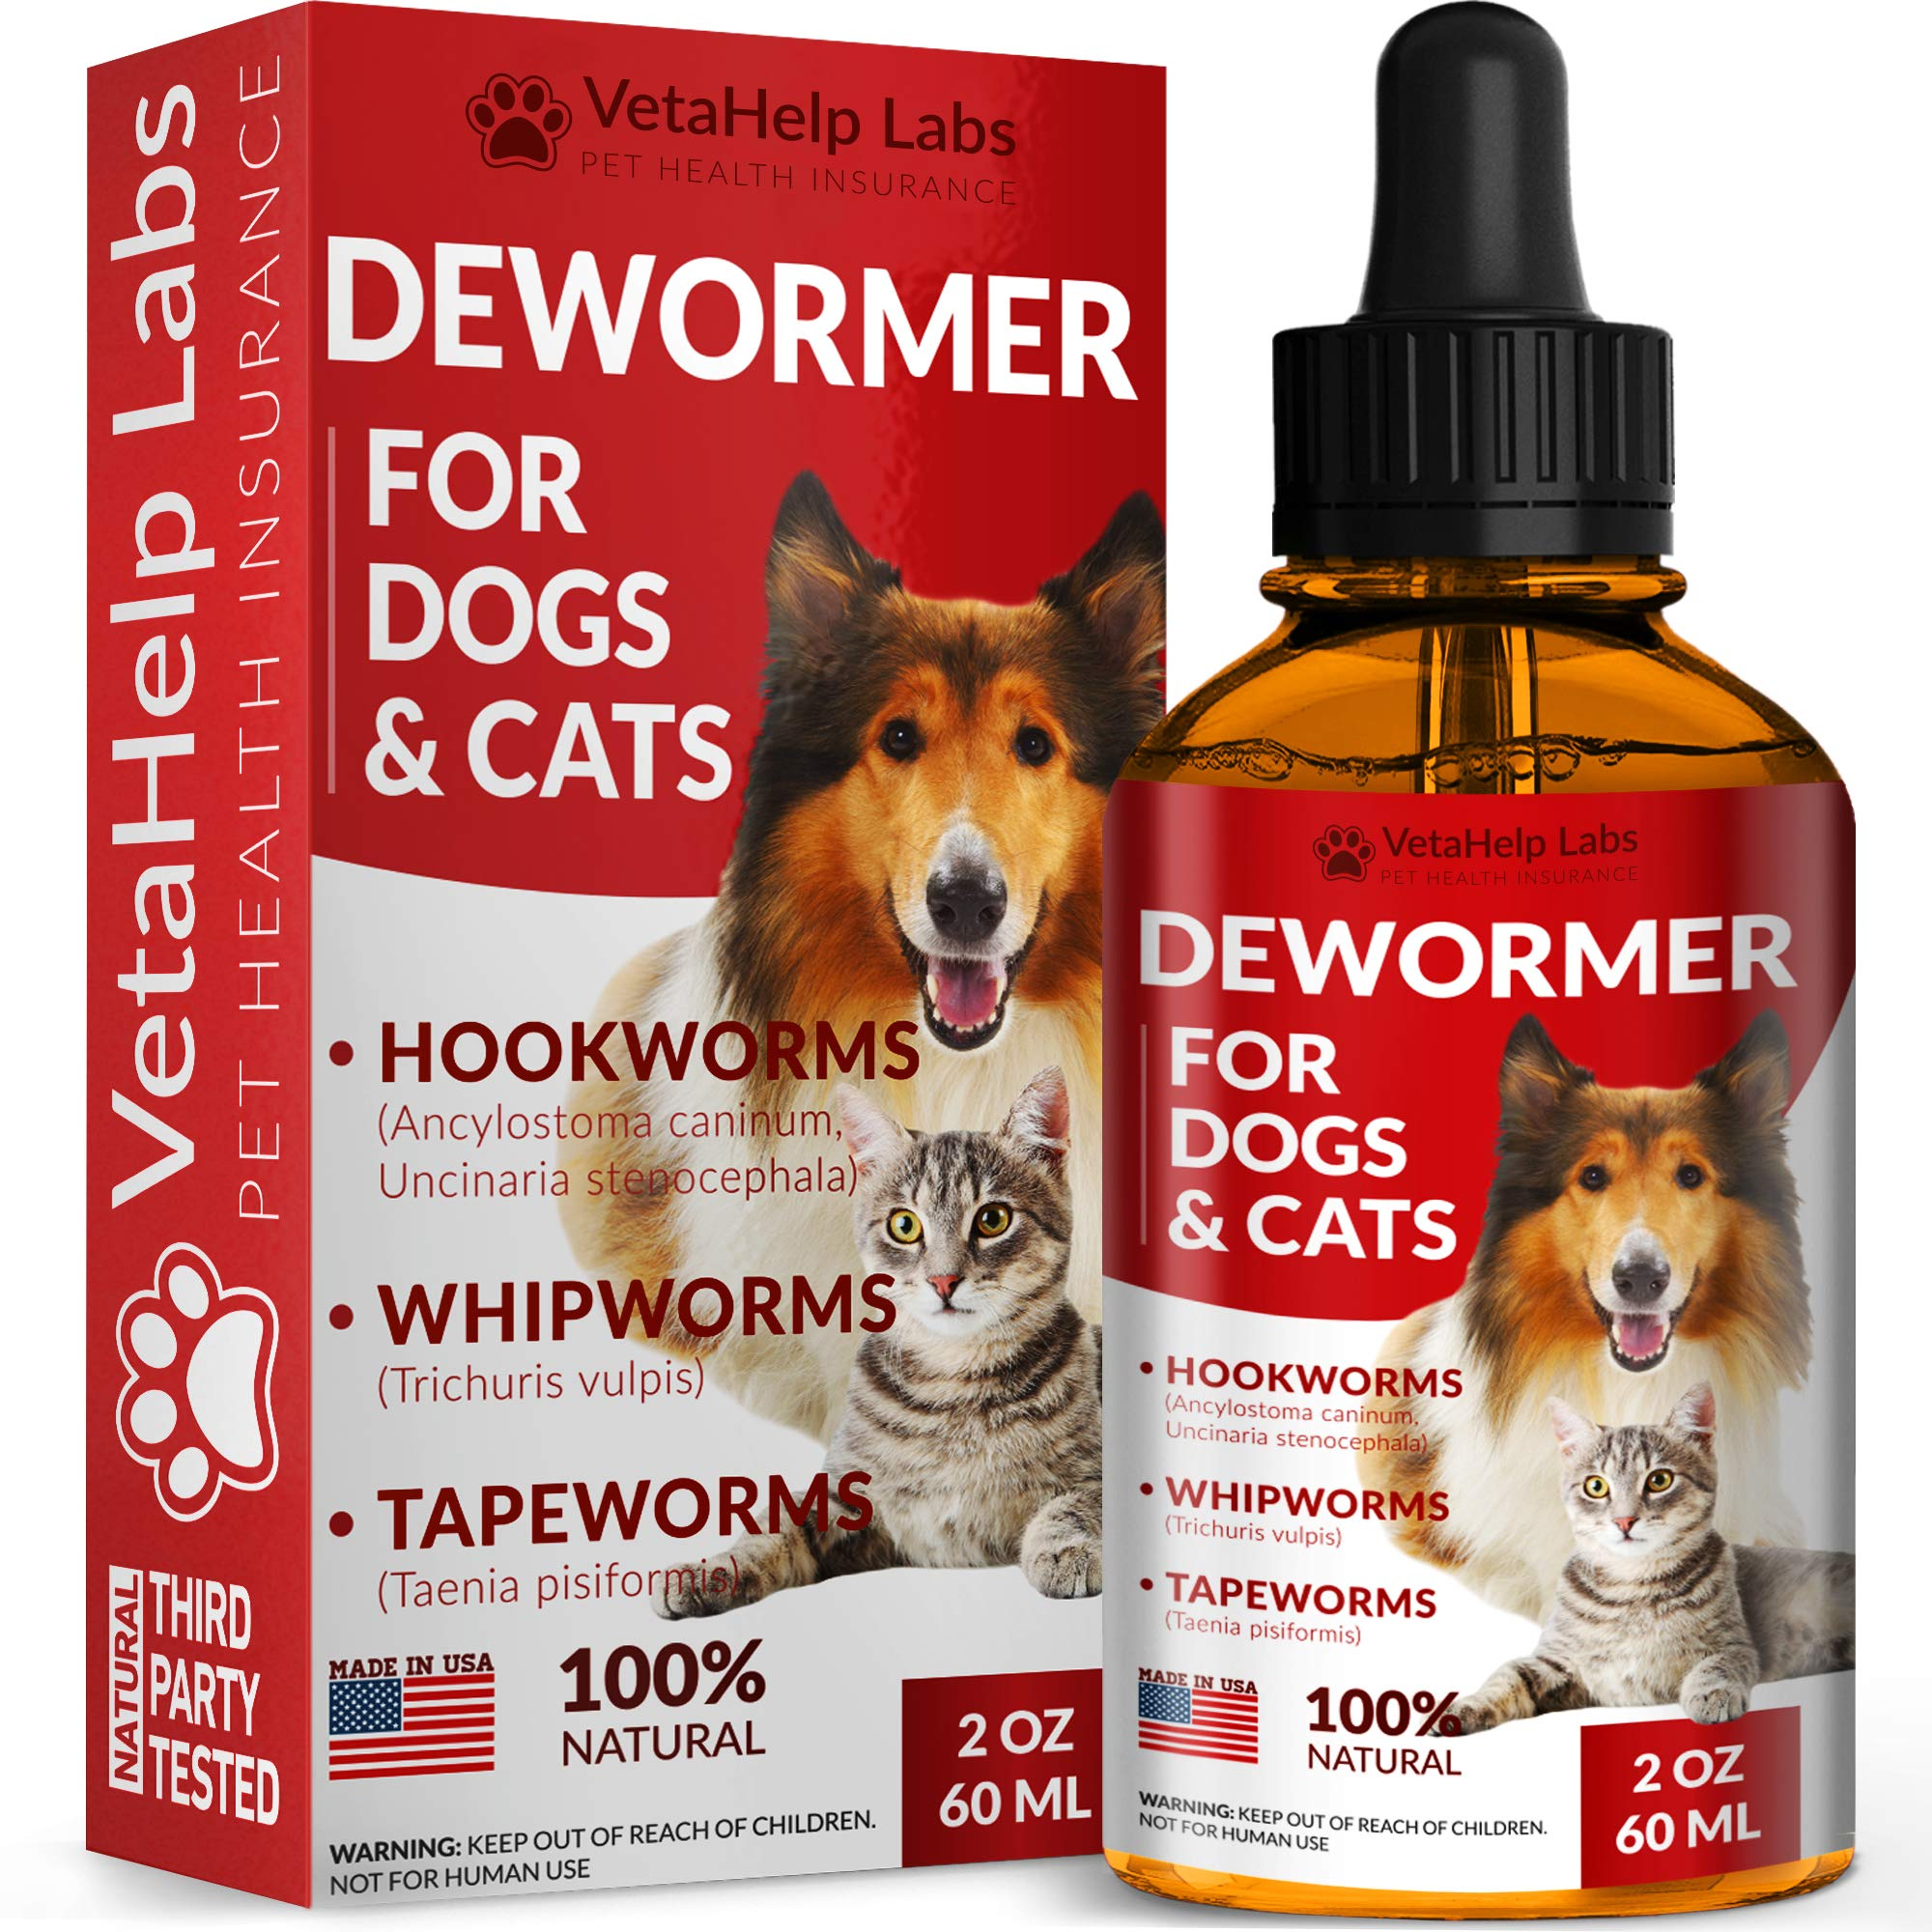 DEW0RMER for Dogs & Cats (2 OZ) - Treat & Prevent - Broad Spectrum WHIPW0RM, H00KW0RM, R0UNDW0RM & TAPEW0RM DEW0RMER - Made in USA - Natural Powerful Blend - Senior Pets, Kitten & Puppy DEW0RMER by VetaHelp Labs